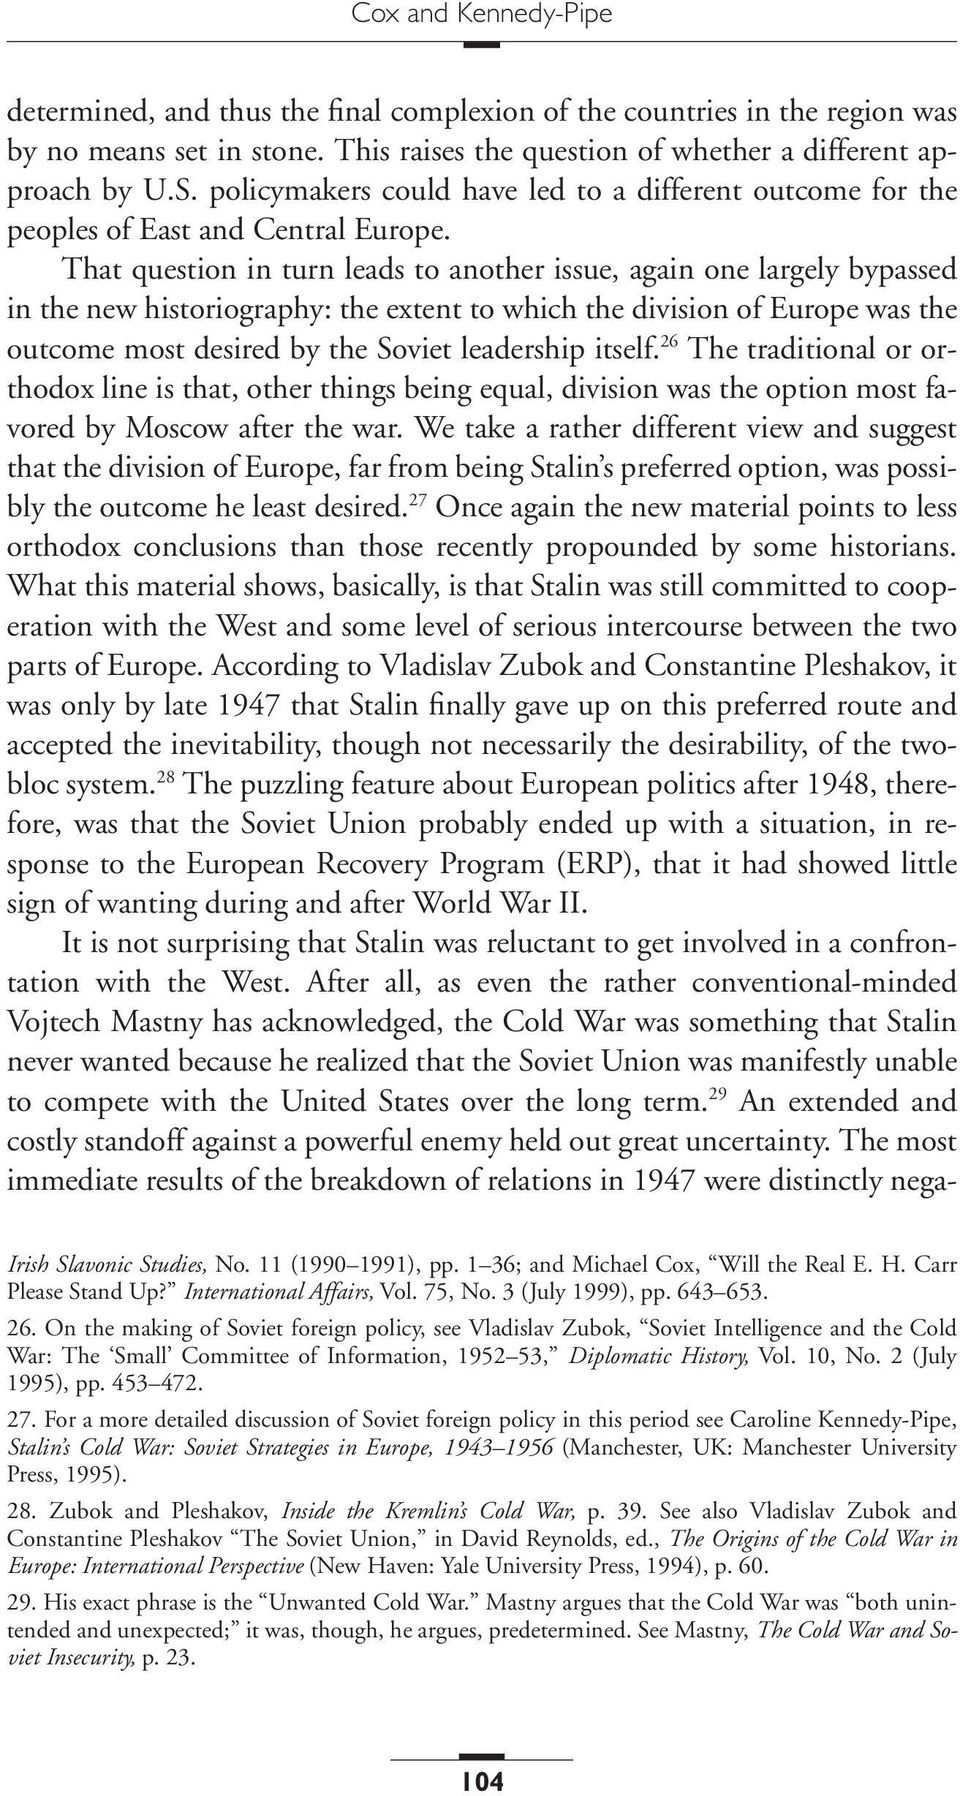 That question in turn leads to another issue, again one largely bypassed in the new historiography: the extent to which the division of Europe was the outcome most desired by the Soviet leadership